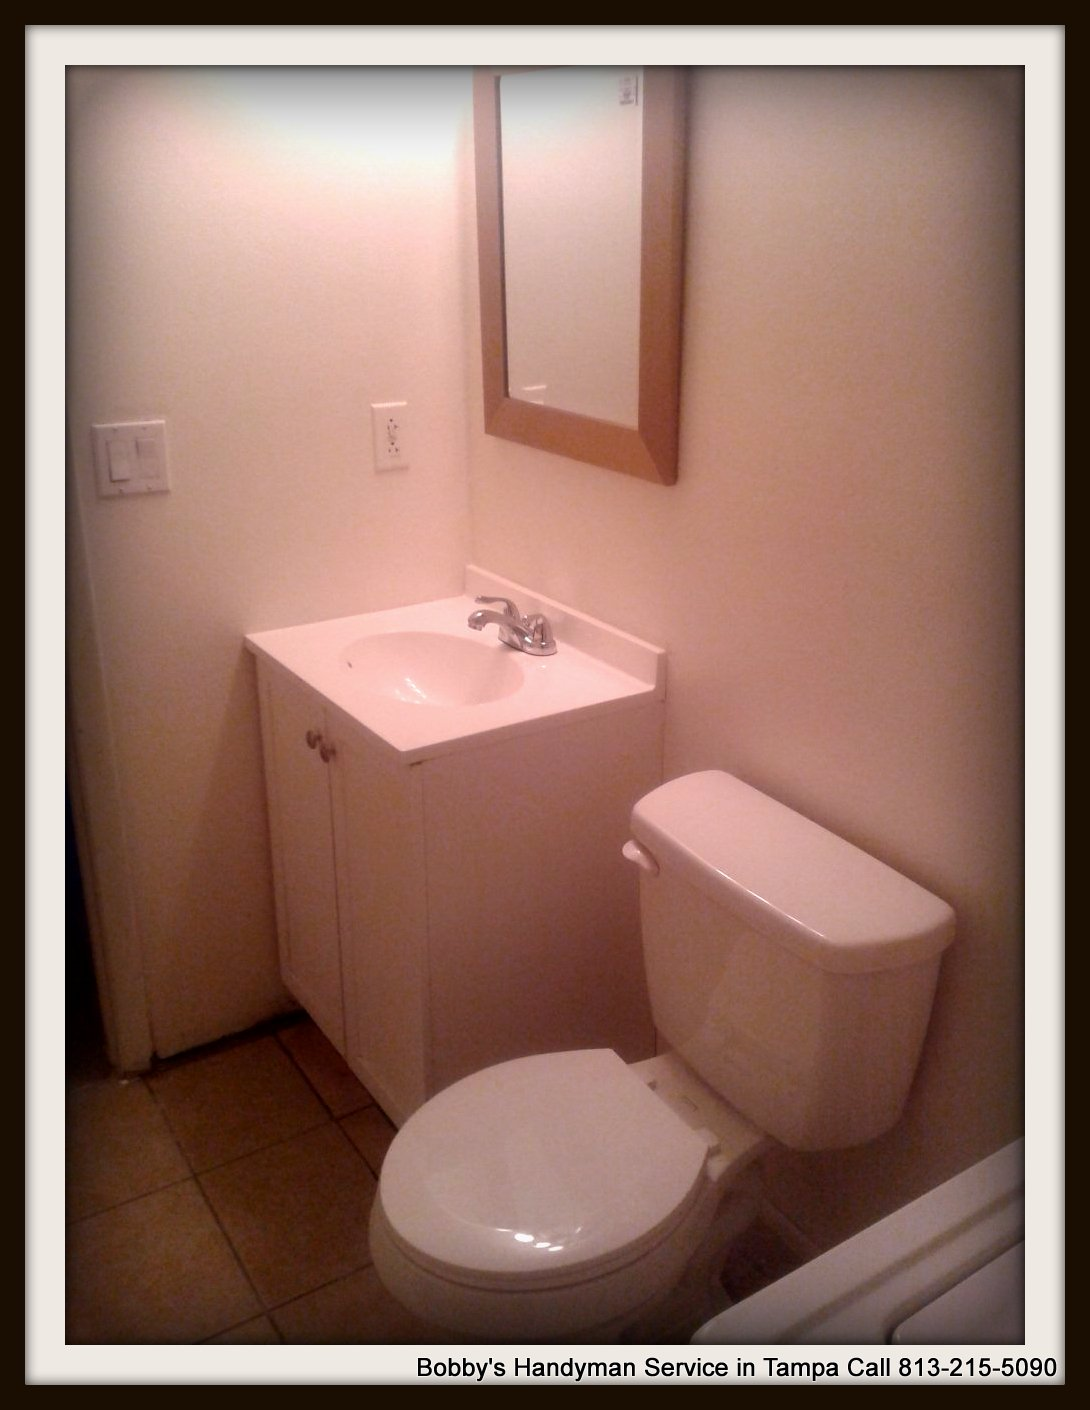 Bathroom renovation tampa contractor 813 215 5090 for Bathroom renovation tampa